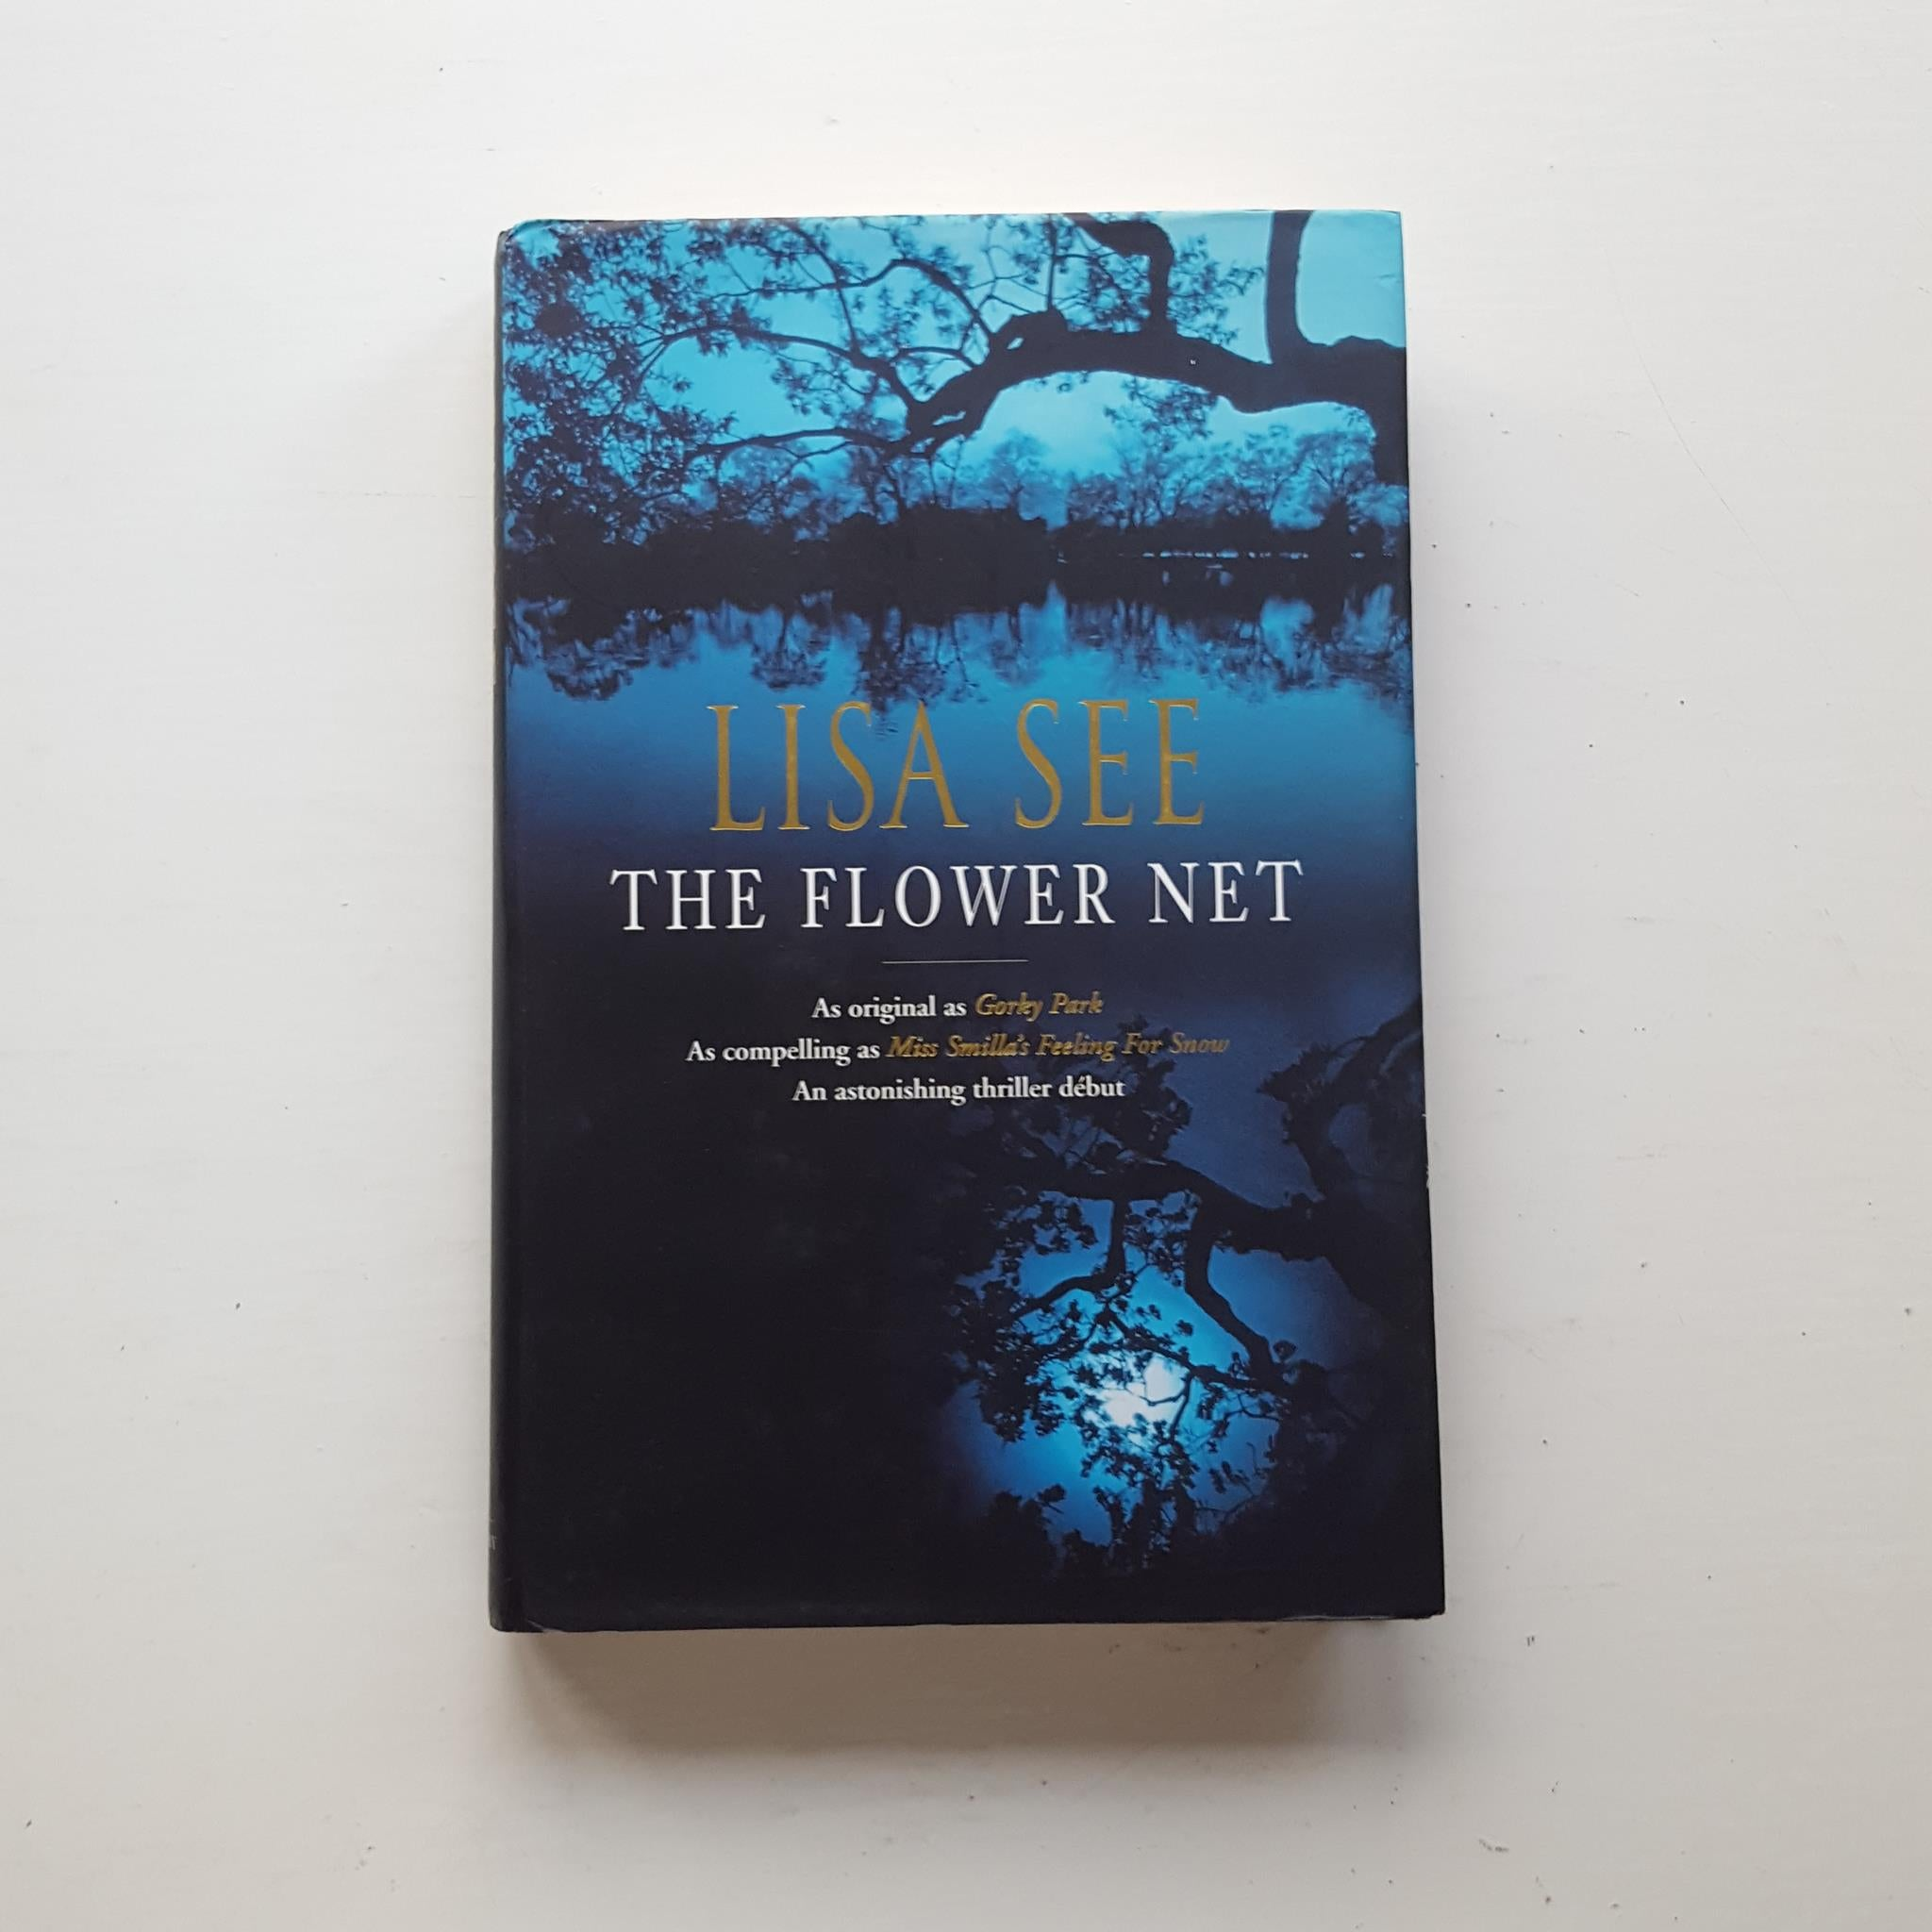 The Flower Net by Lisa See